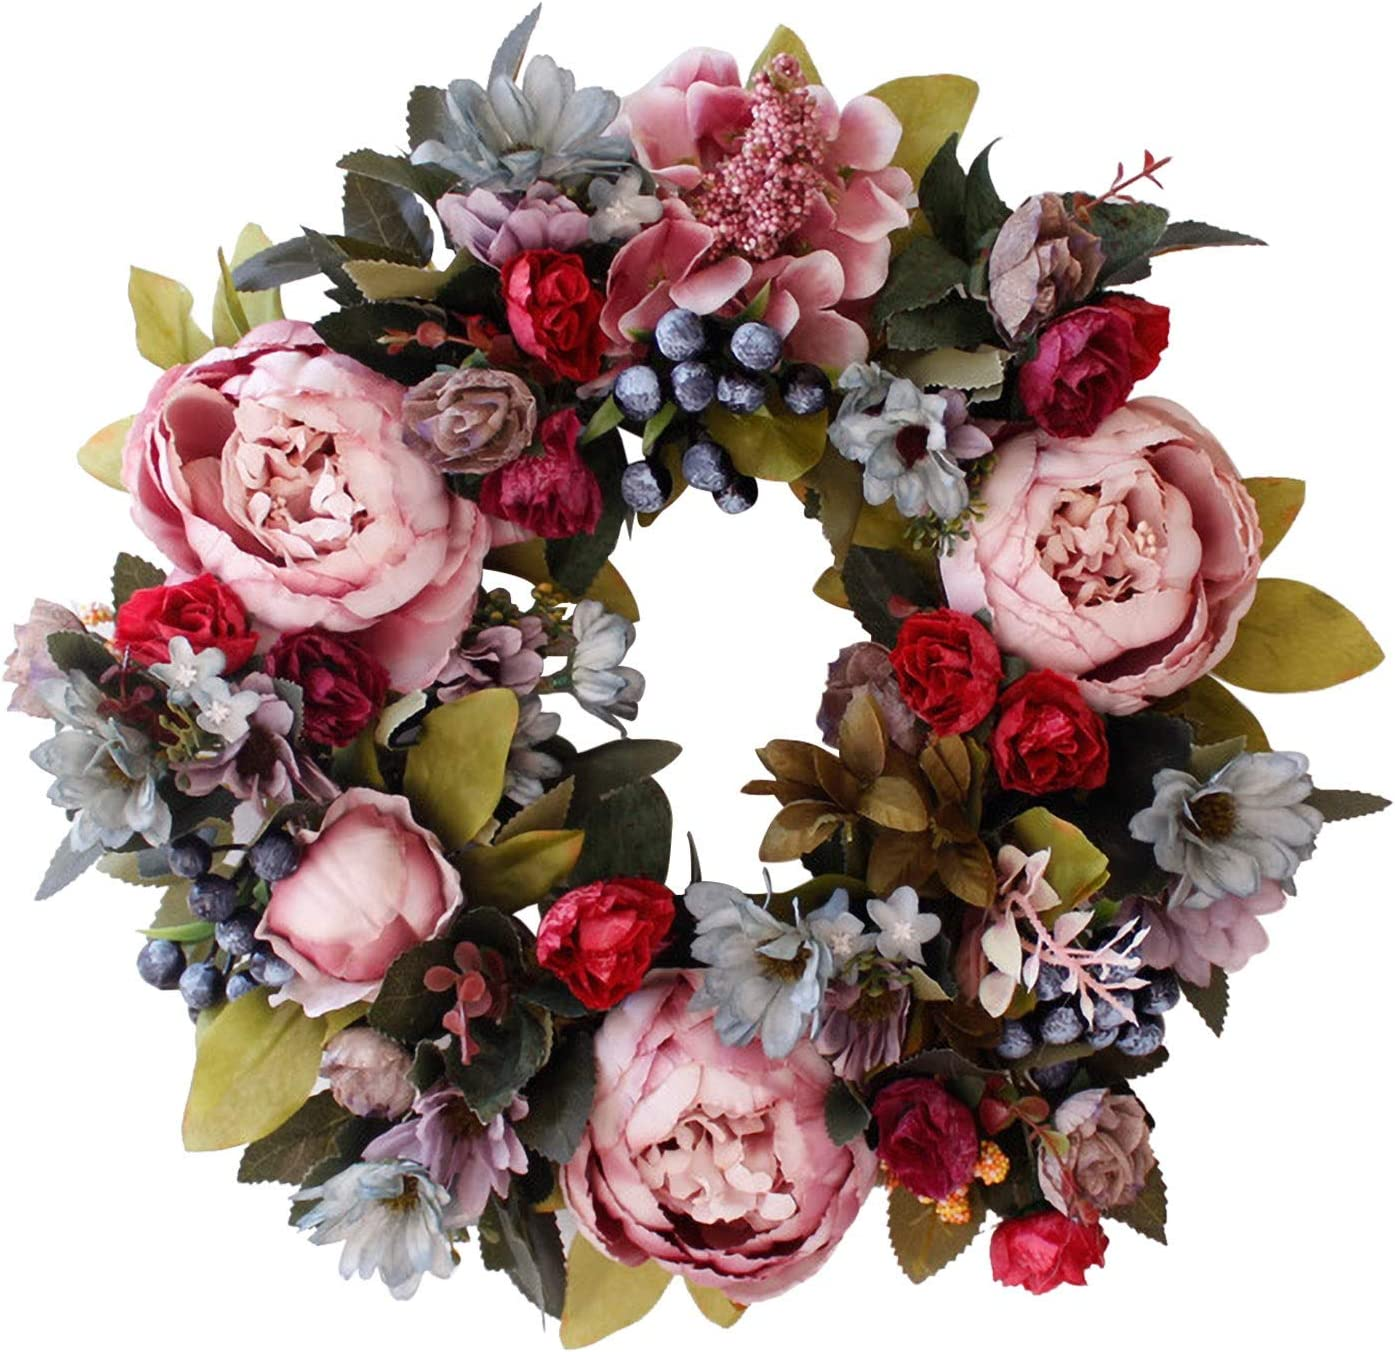 Spring Wreath, Artificial Peony Flowers Front Door Decor, Holiday Wreaths for Front Door, Artificial Garland Hanging Pendants for Wall Decoration Wedding Farmhouse, (A, 1PC)